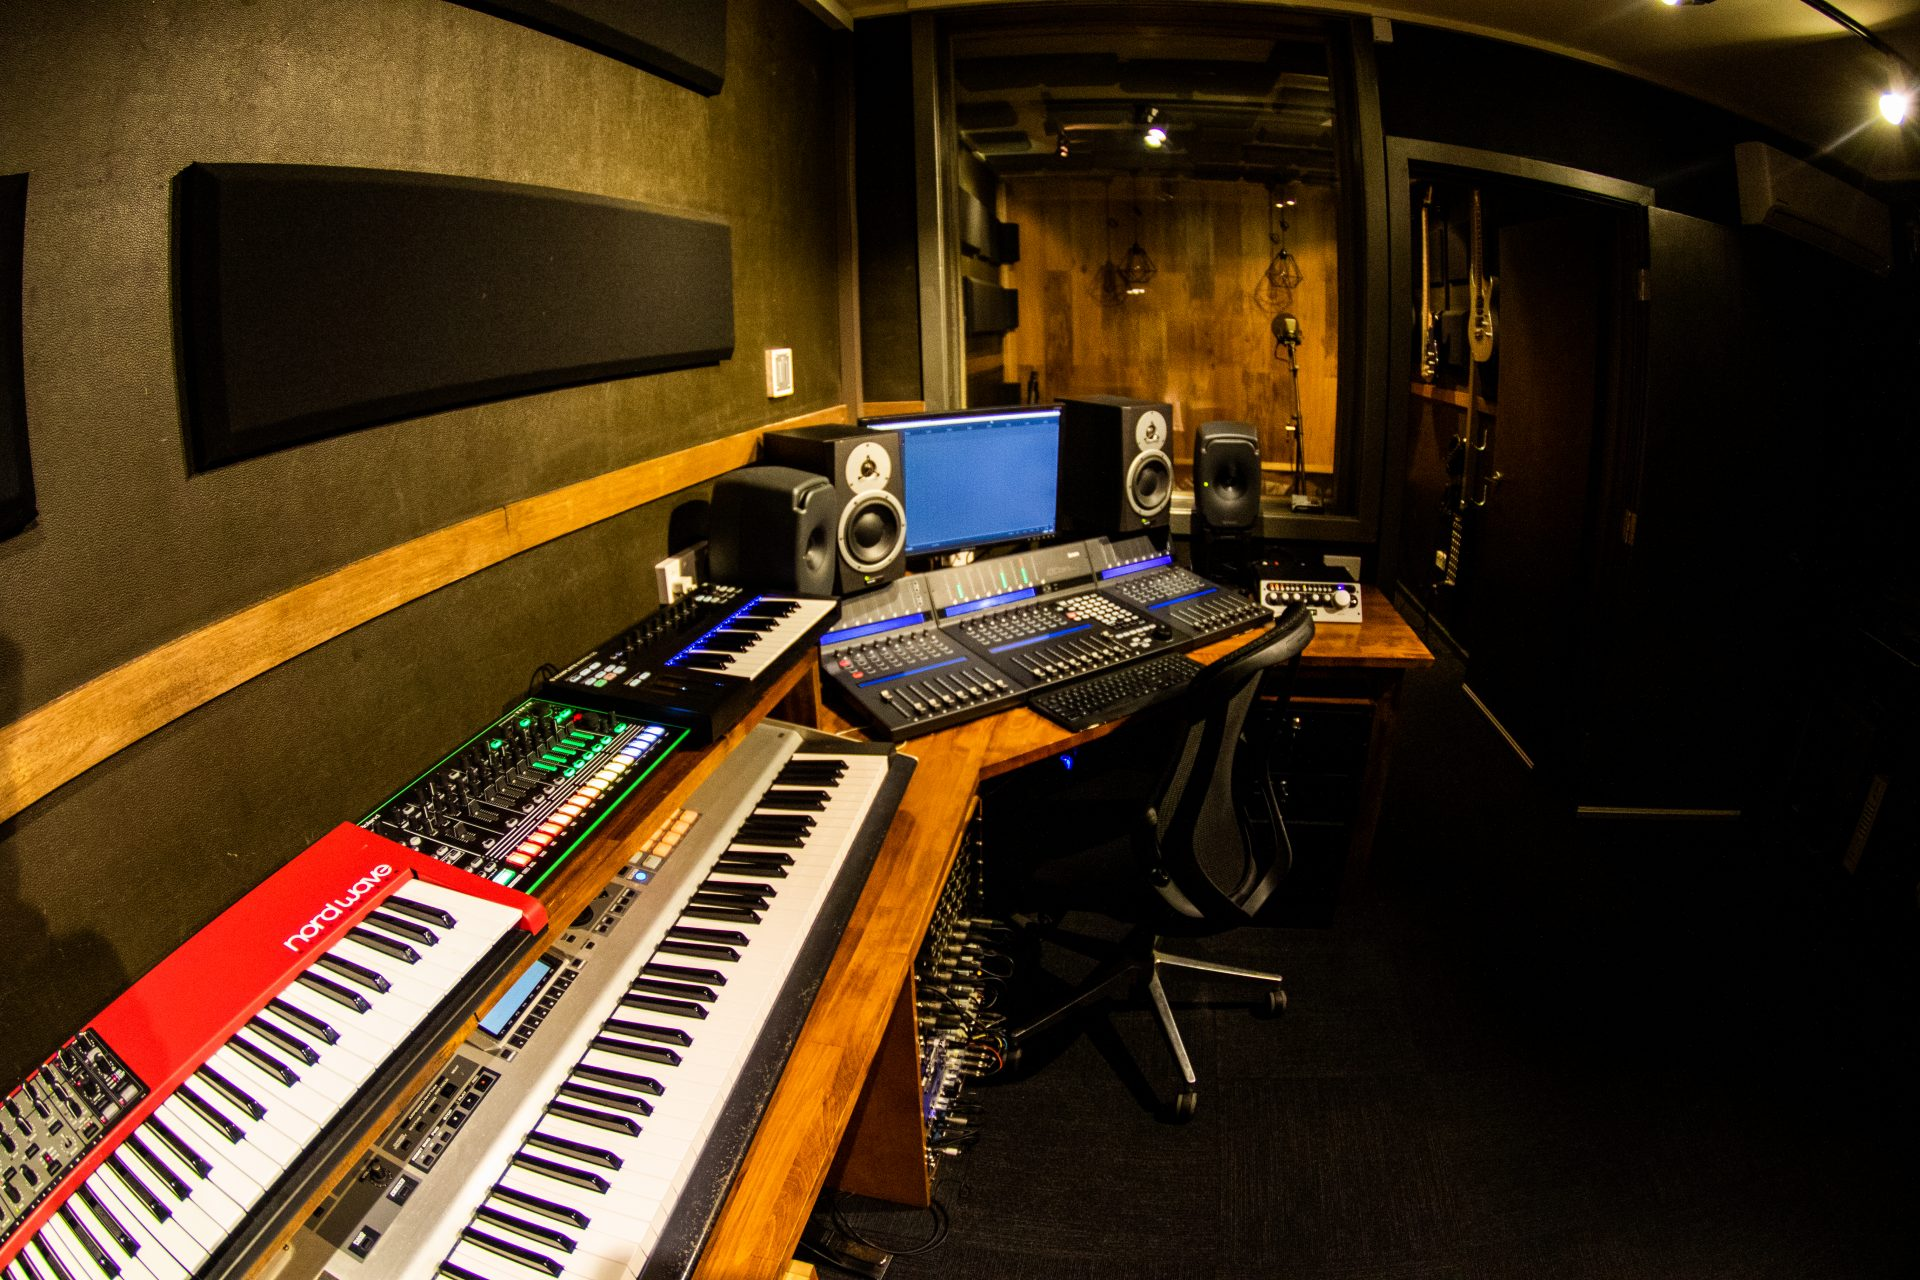 Mixing Desk and Recording Booth